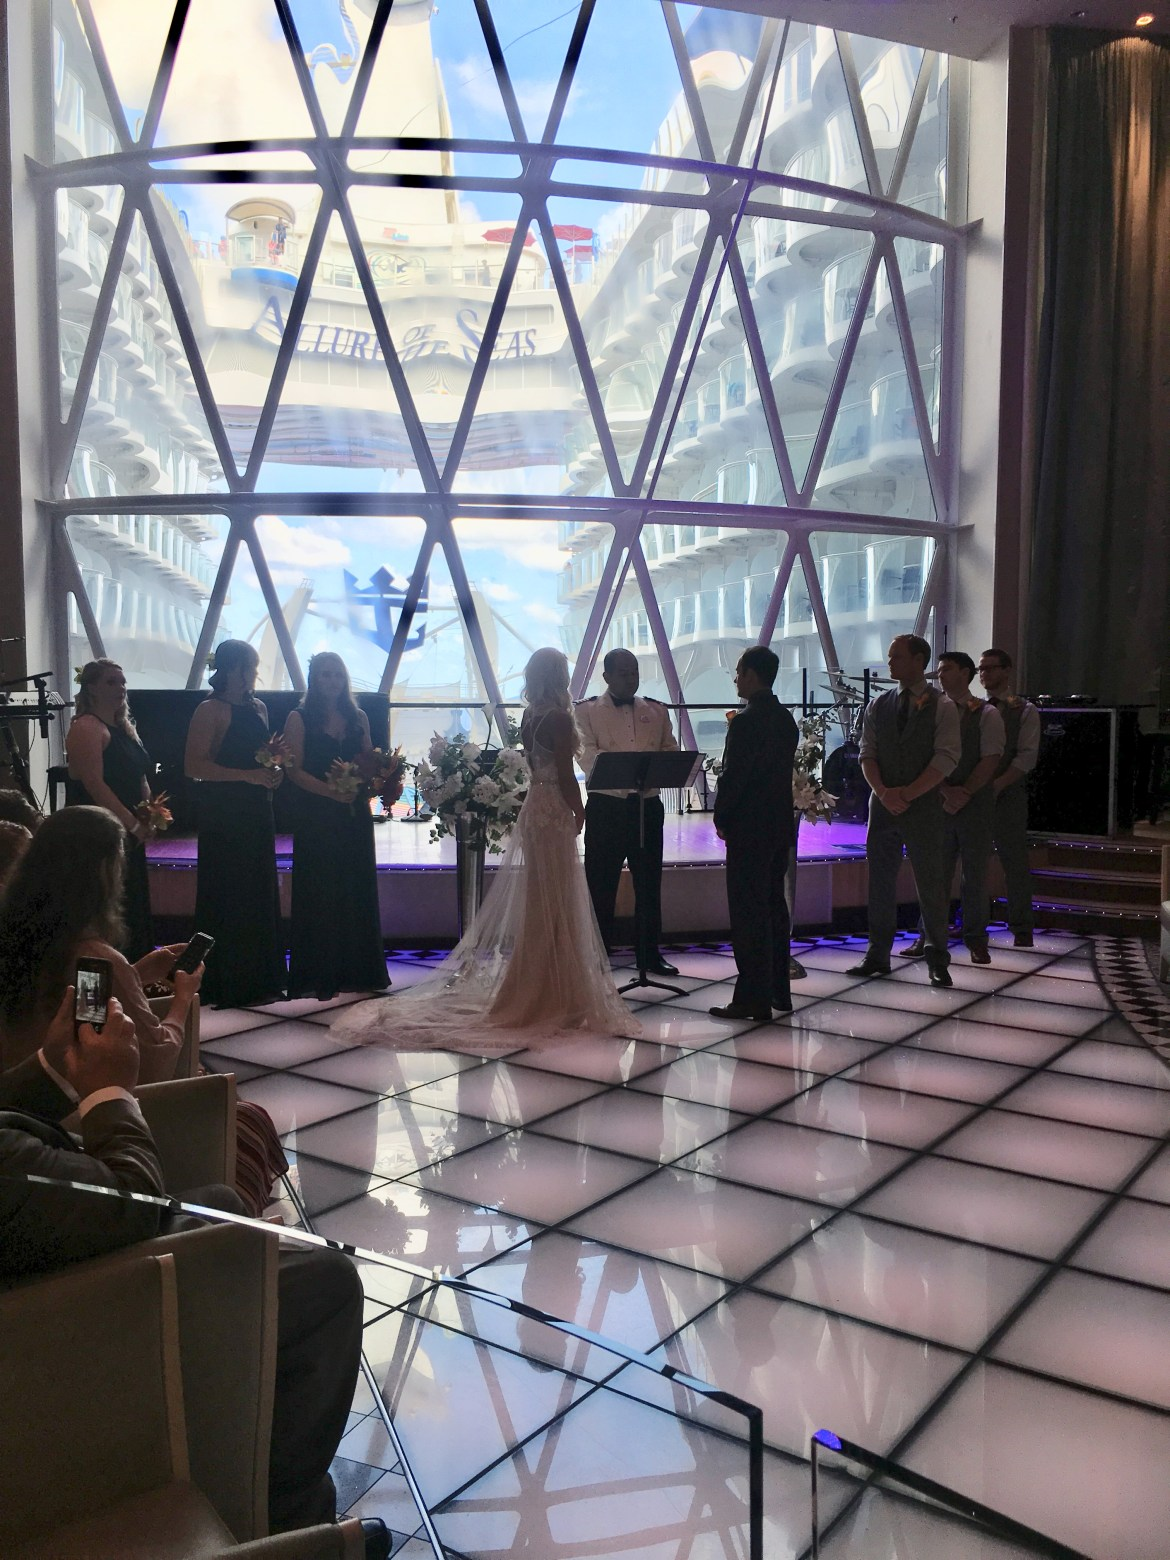 Here is some key information you may want to consider before getting married on a cruise.